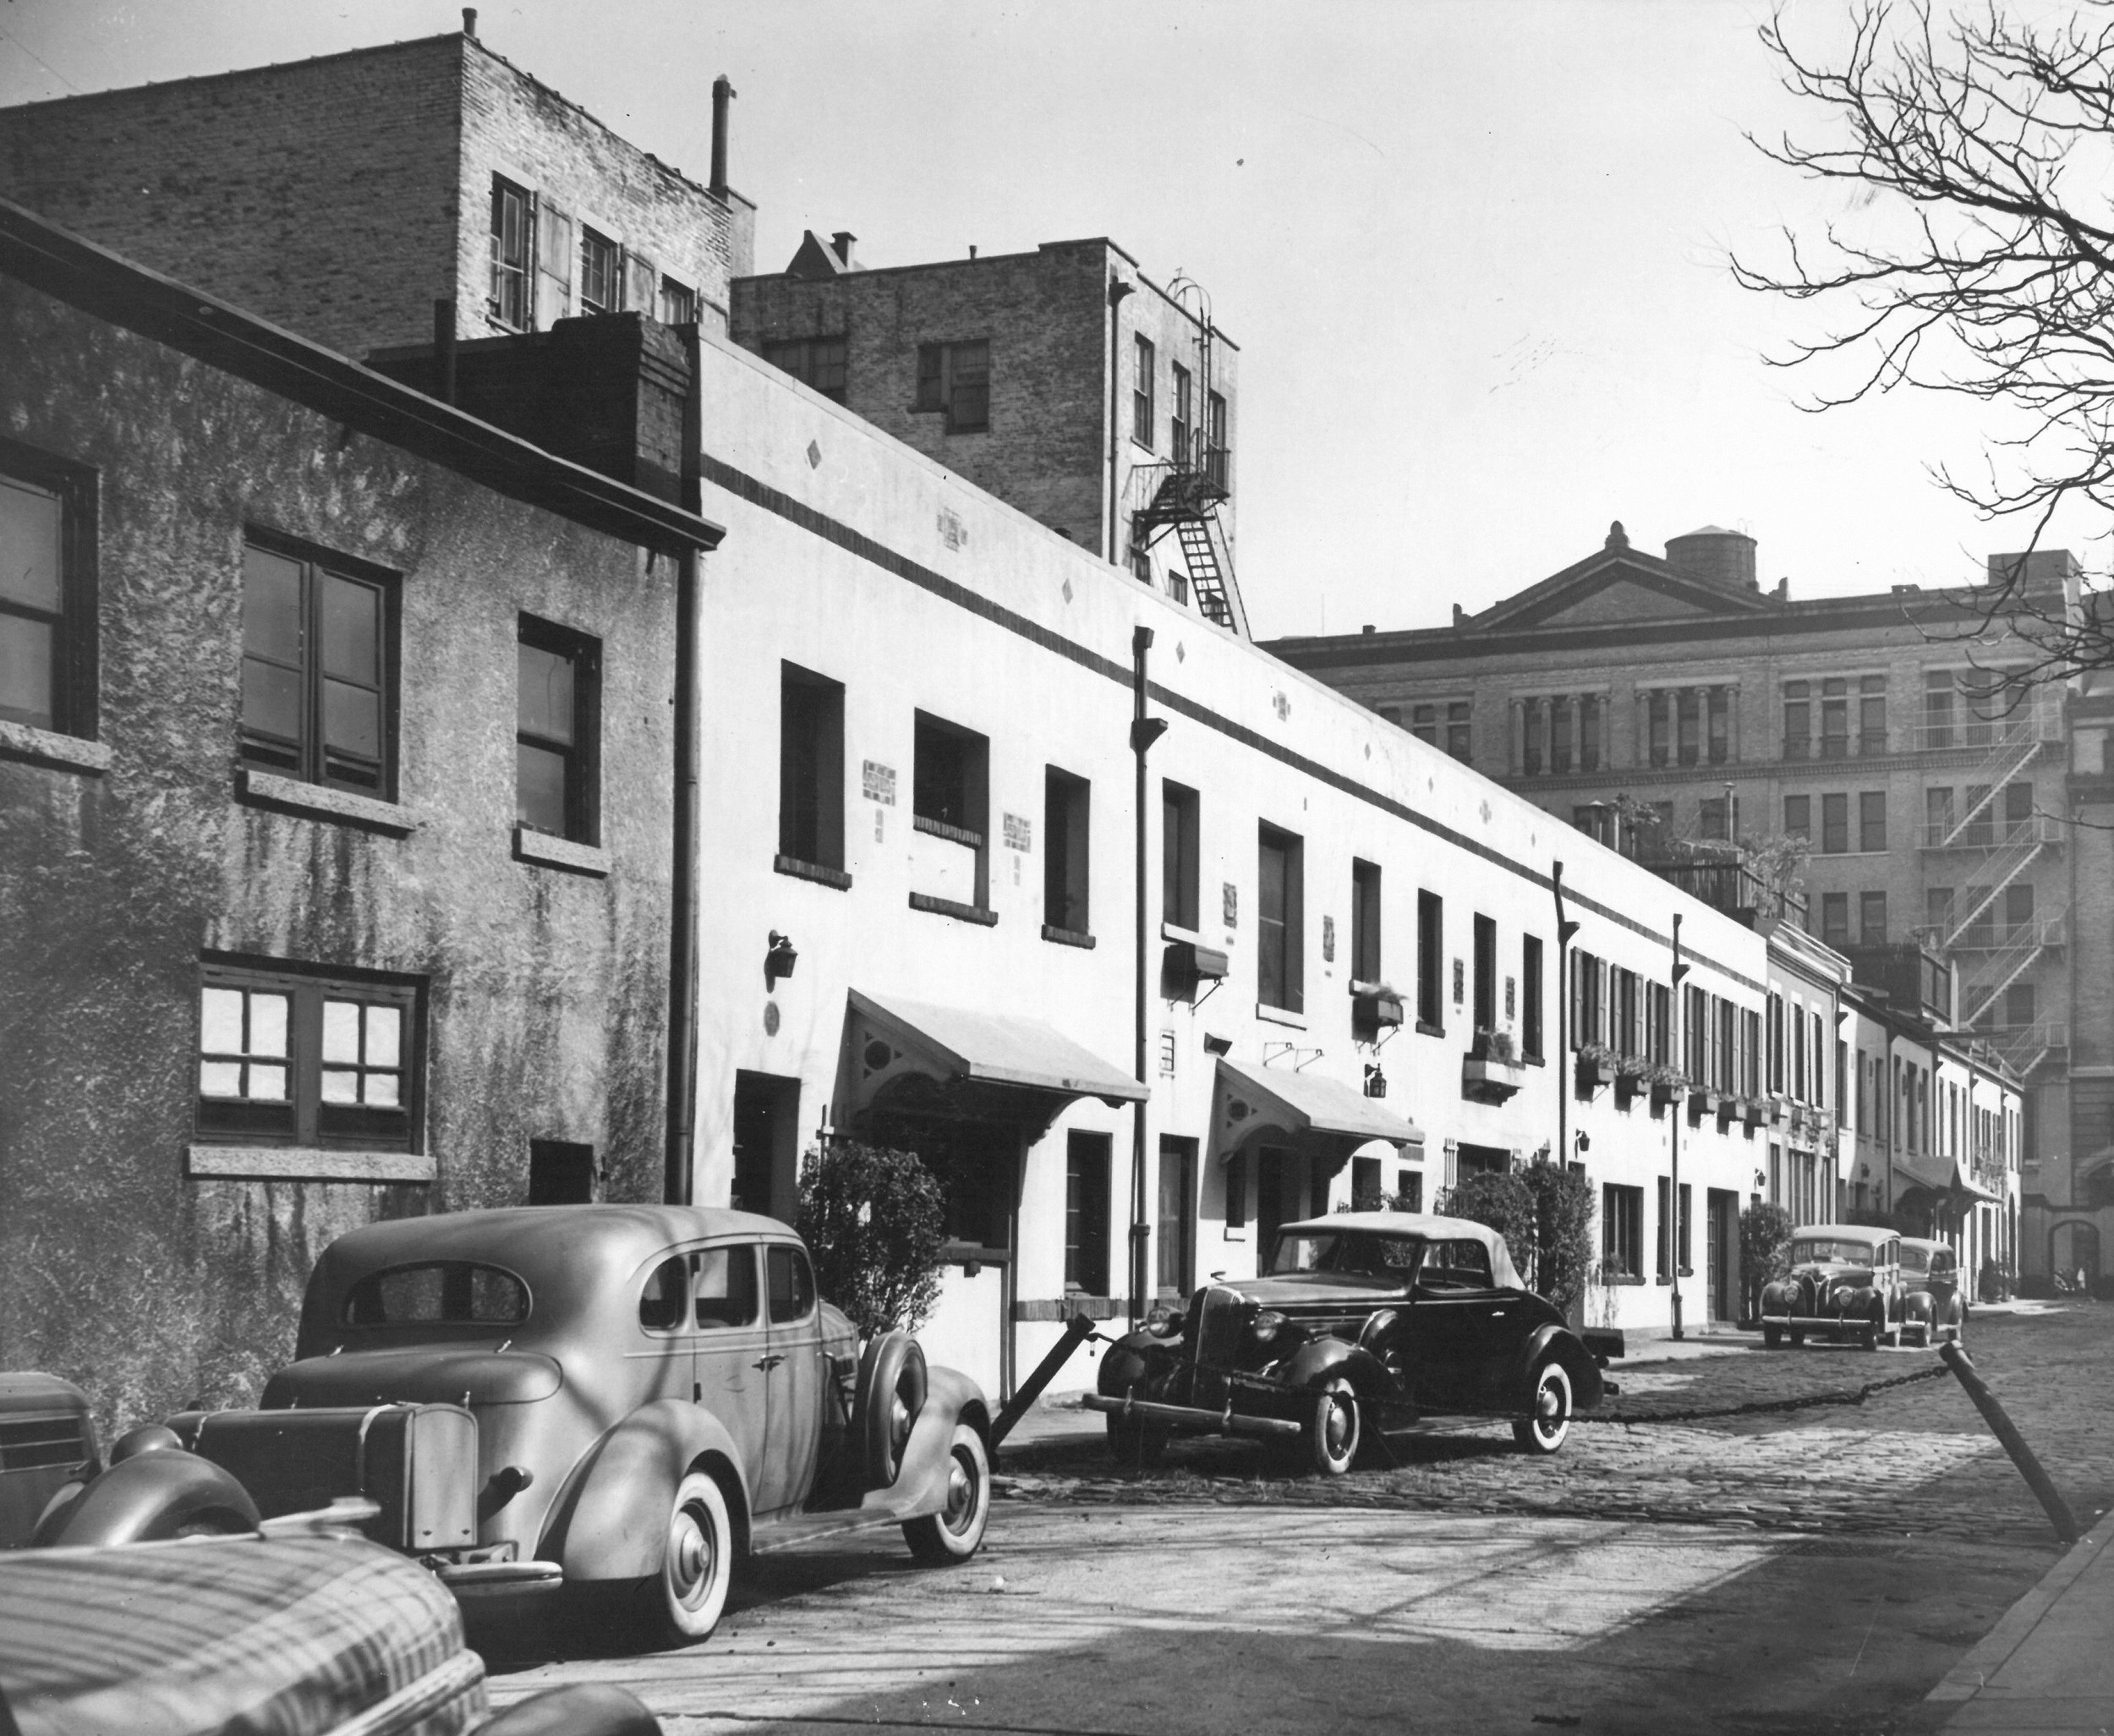 Washington Mews. Date: Oct. 17, 1938. Photographer: Eiseman. WPA-FWP Collection, neg. 3377-13. NYC Municipal Archives.